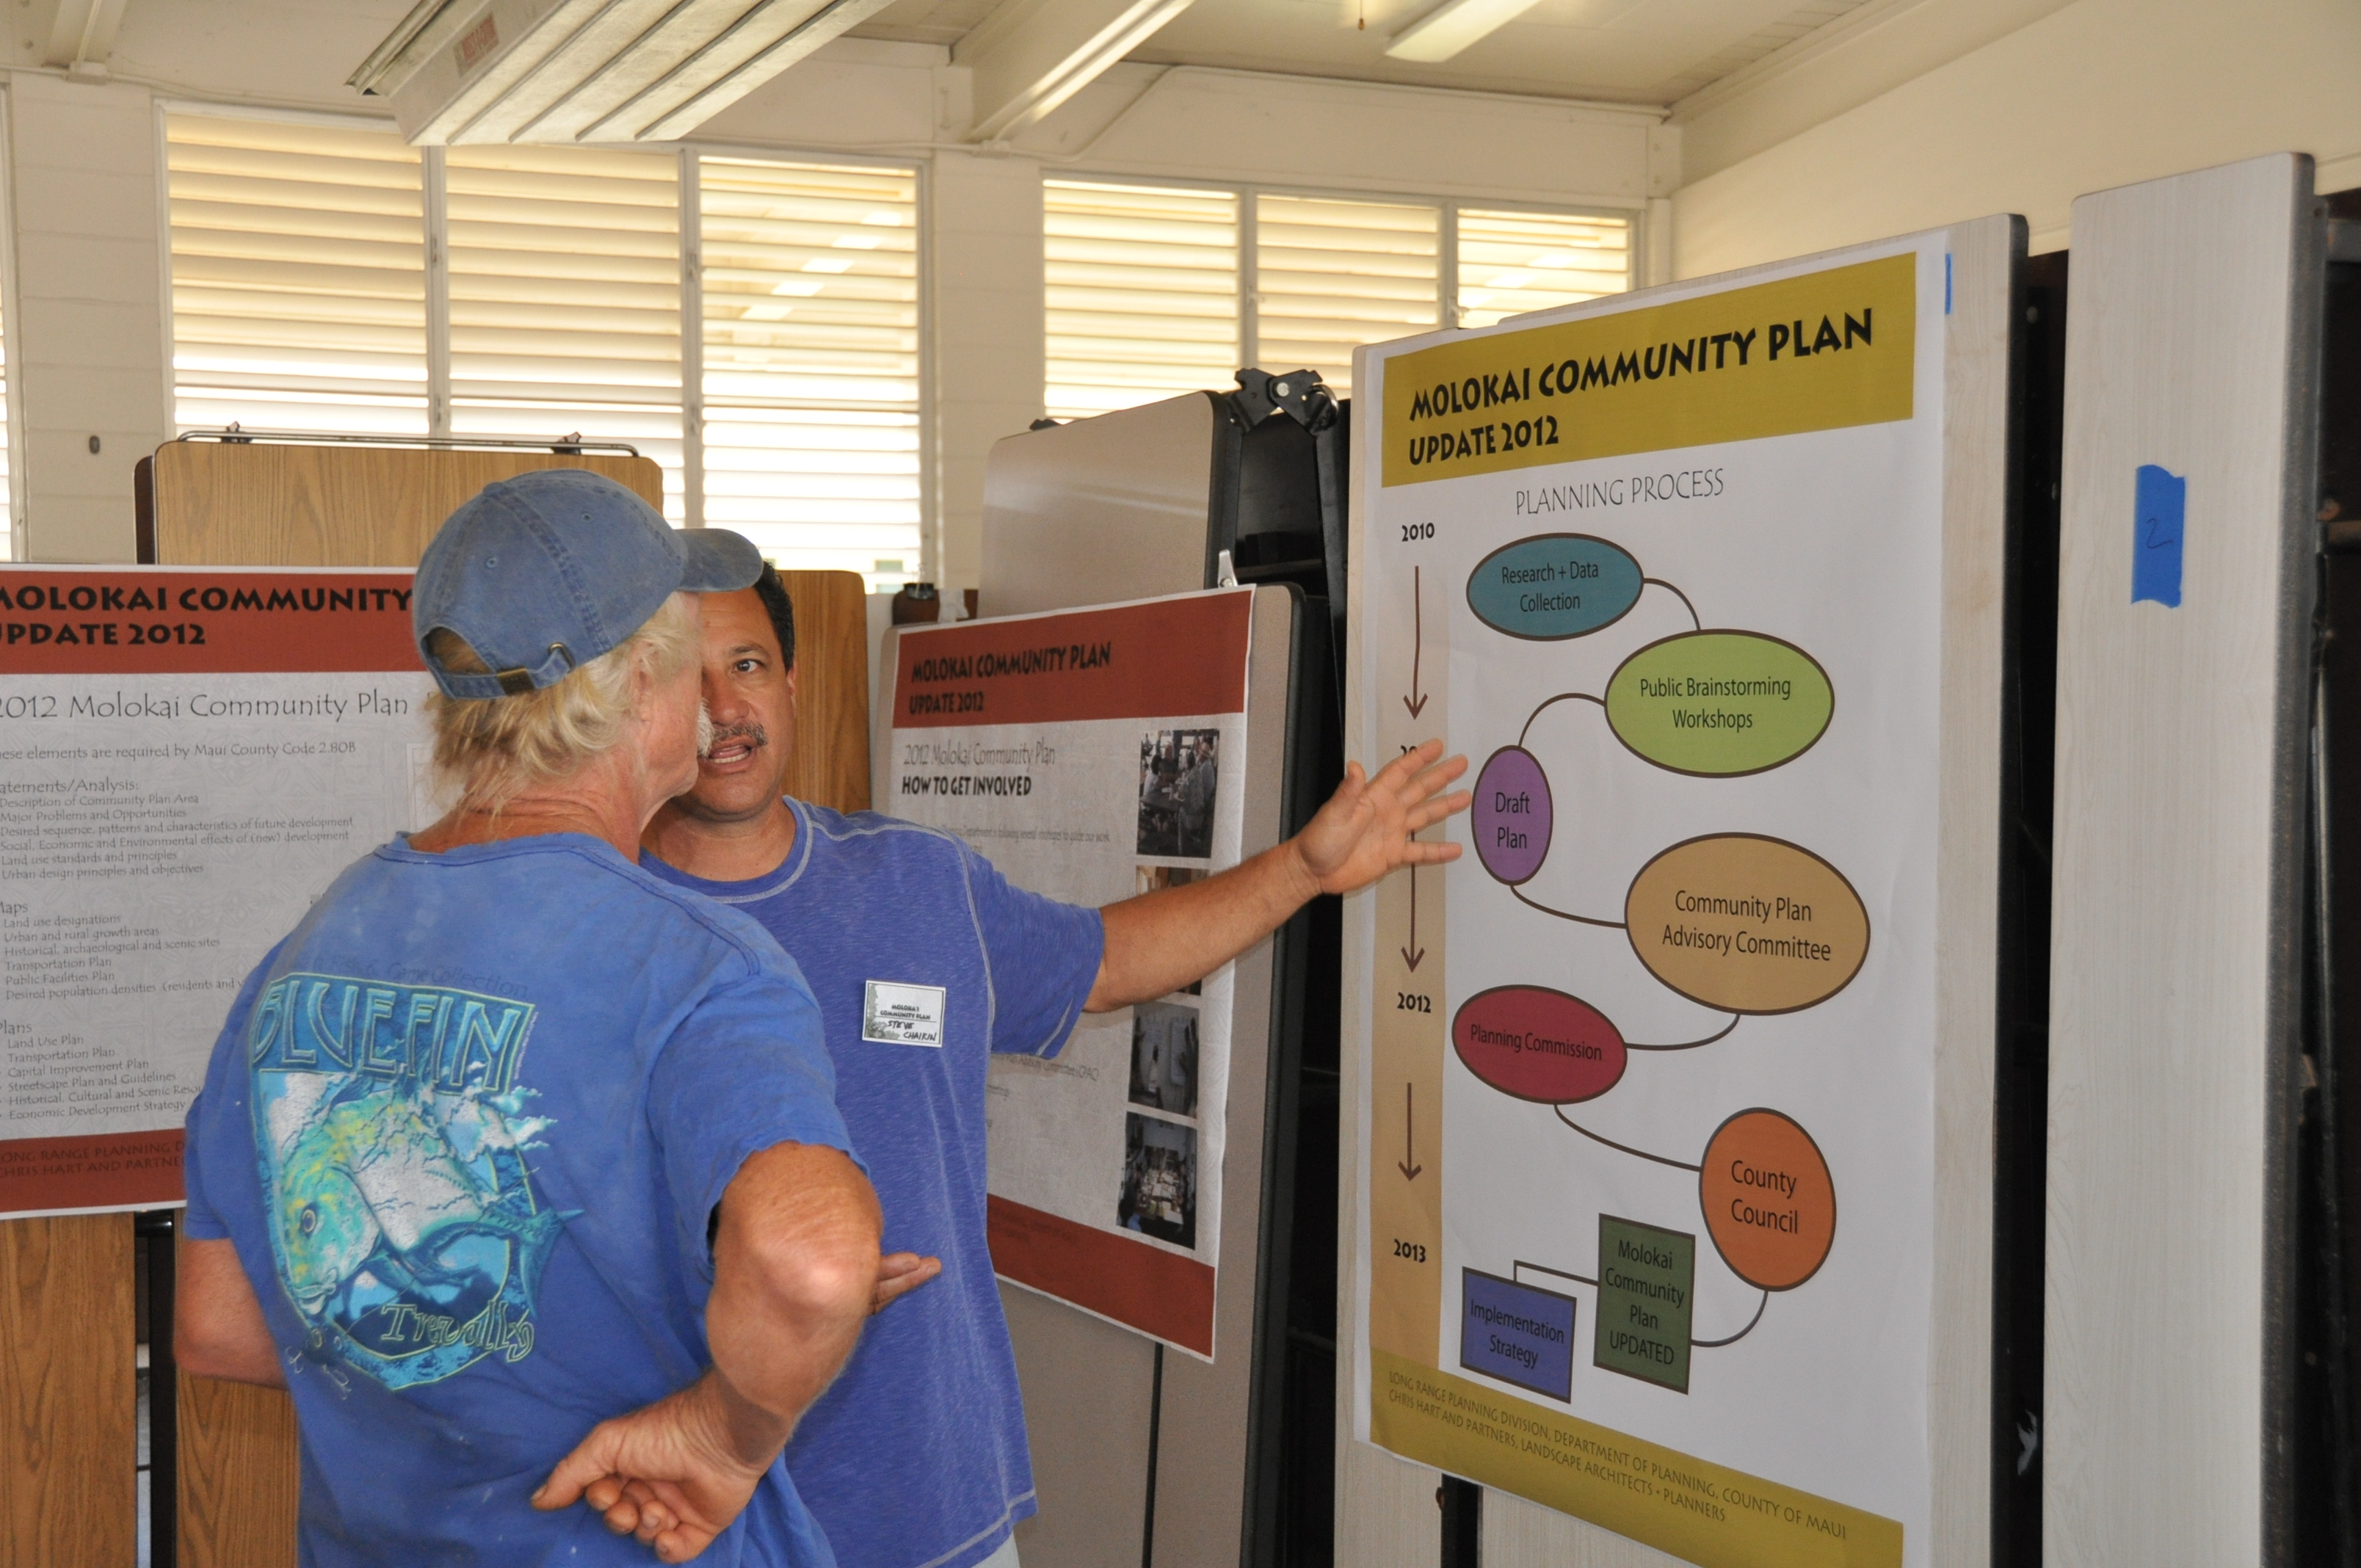 Community Plan update greeted with guarded optimism at open house